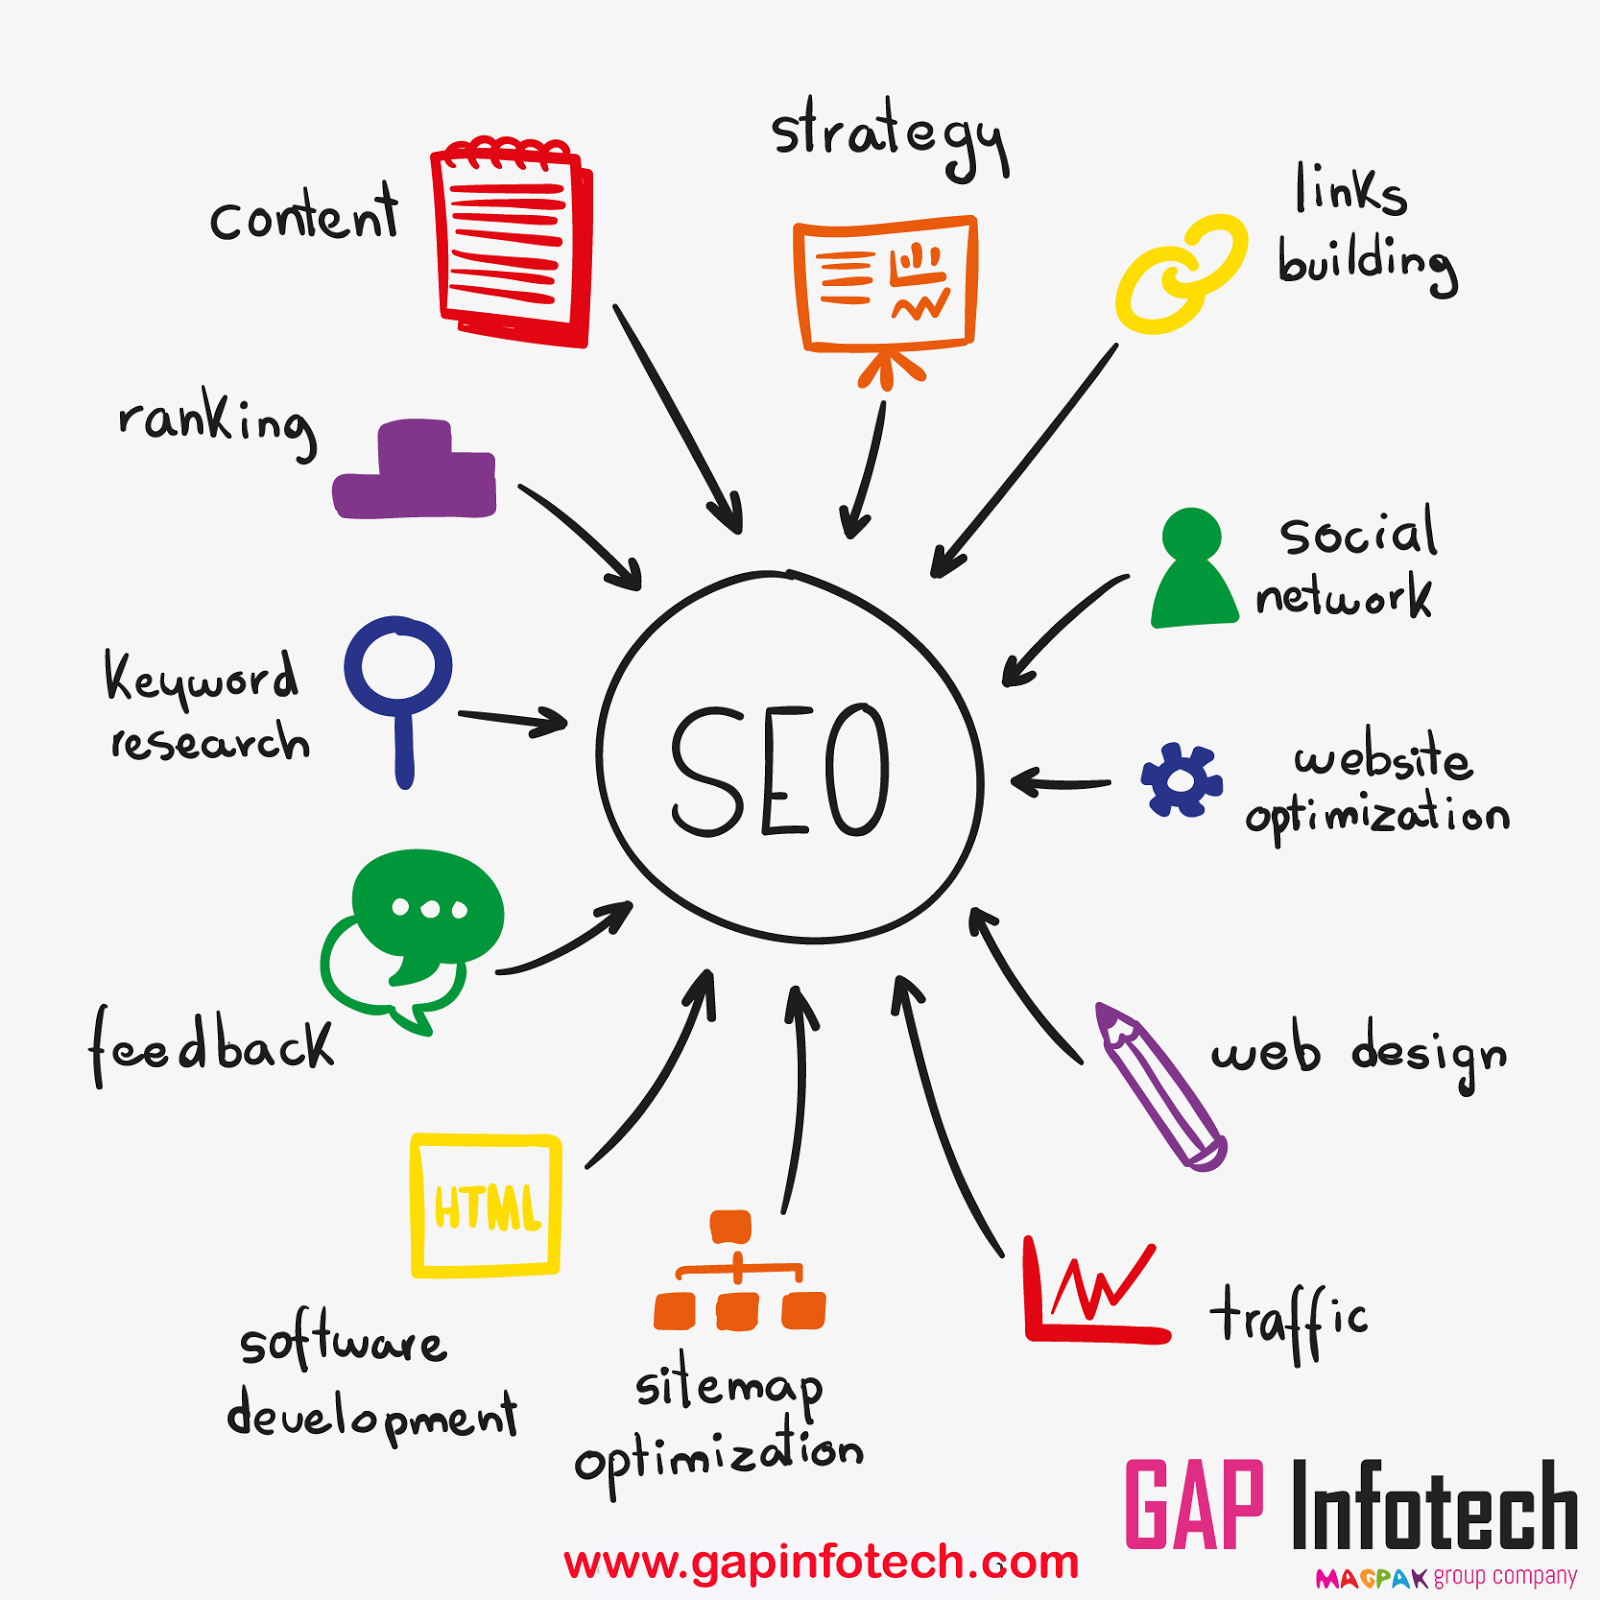 Web Design Company in Gurgaon: The Need and Importance of